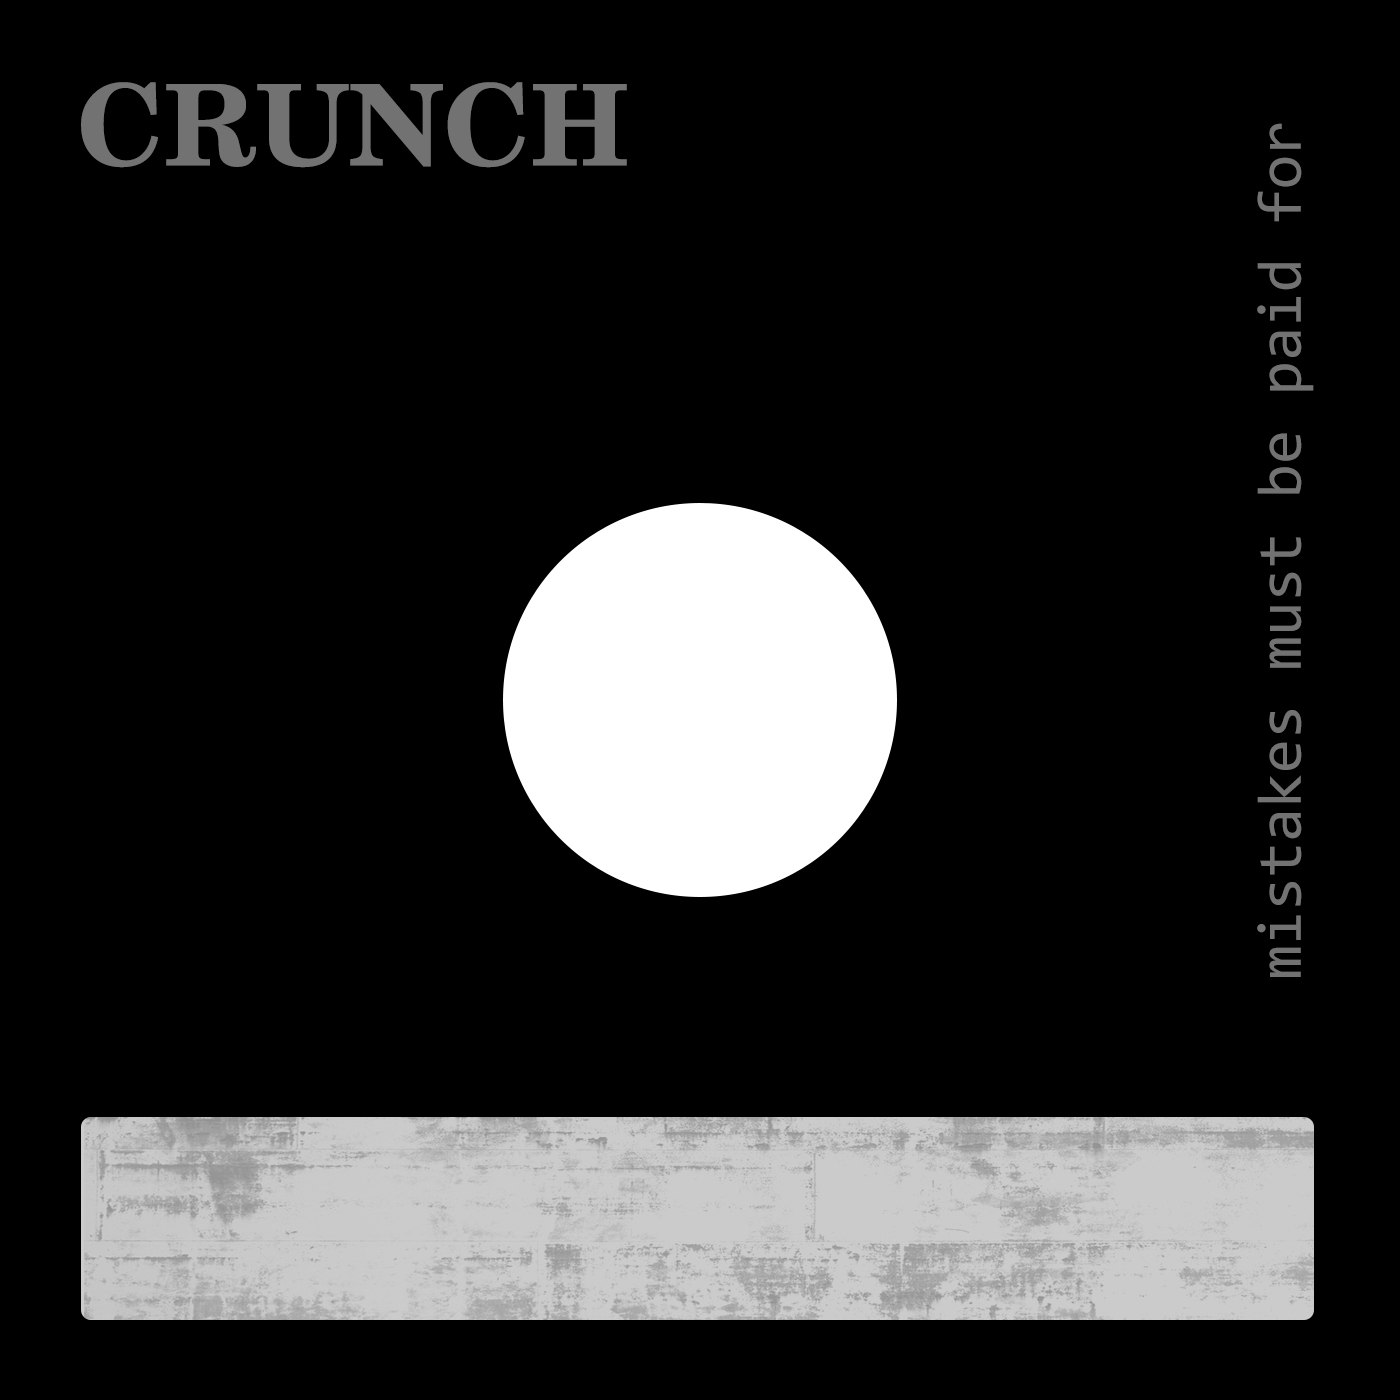 CRUNCH - Mistakes Must Be Paid For (2016) [Single]